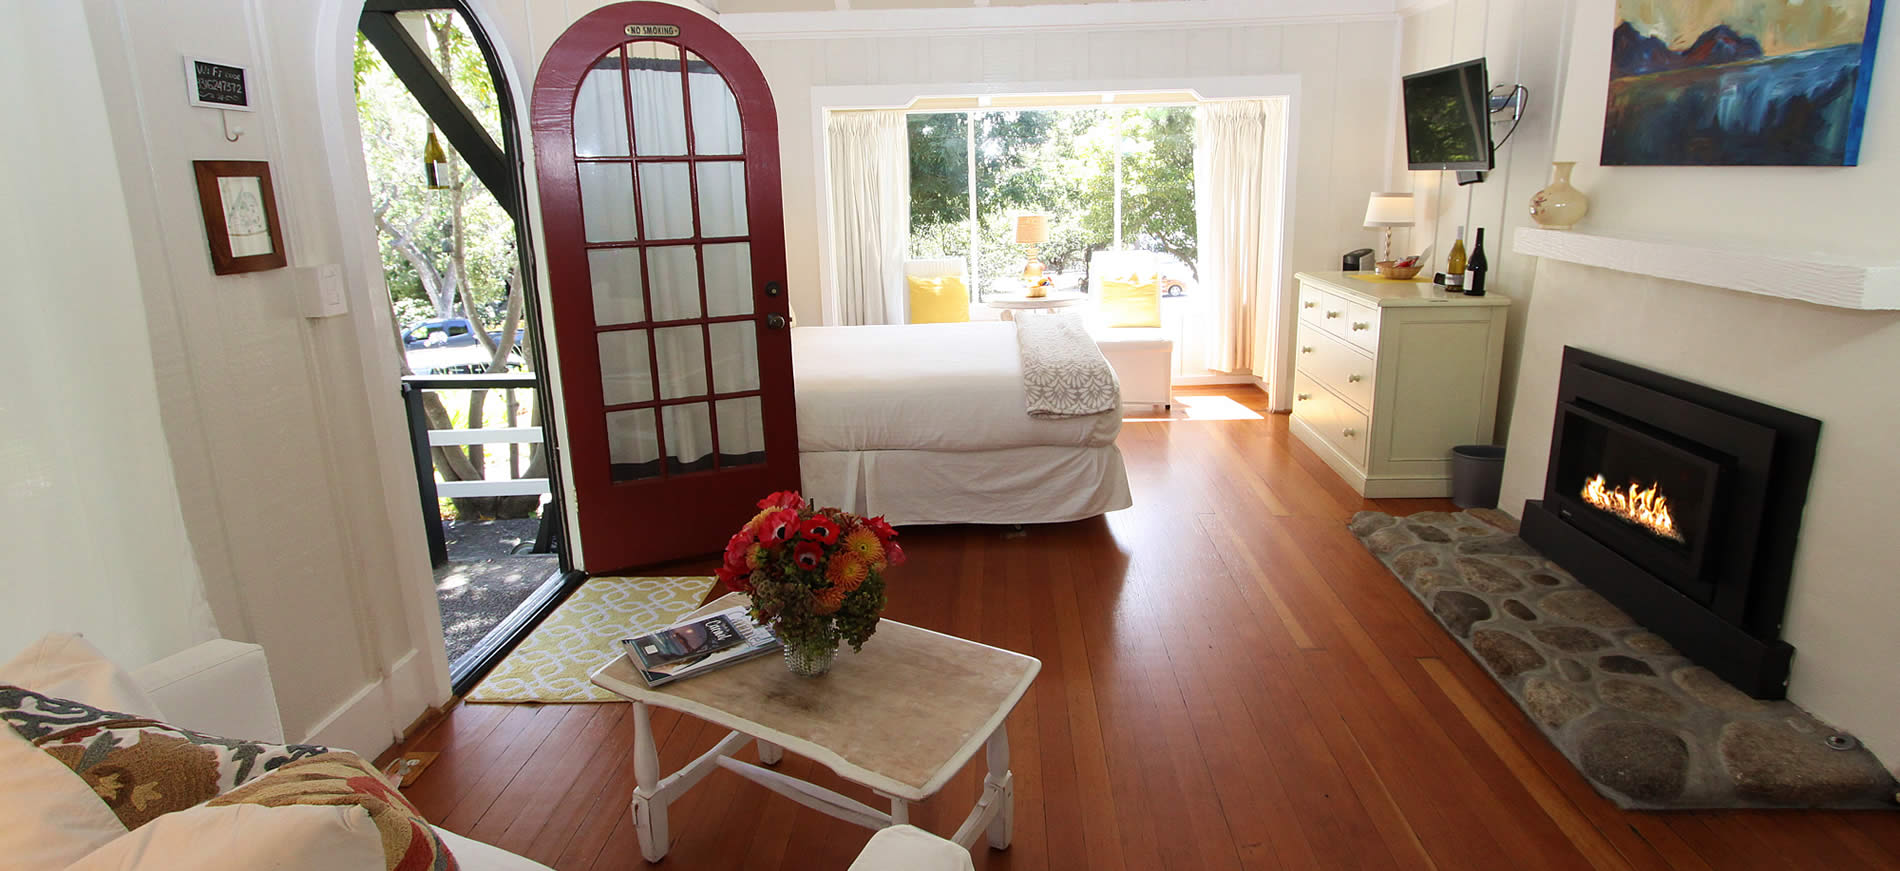 carmel bed and breakfast cottages - open door, bed, table and fireplace